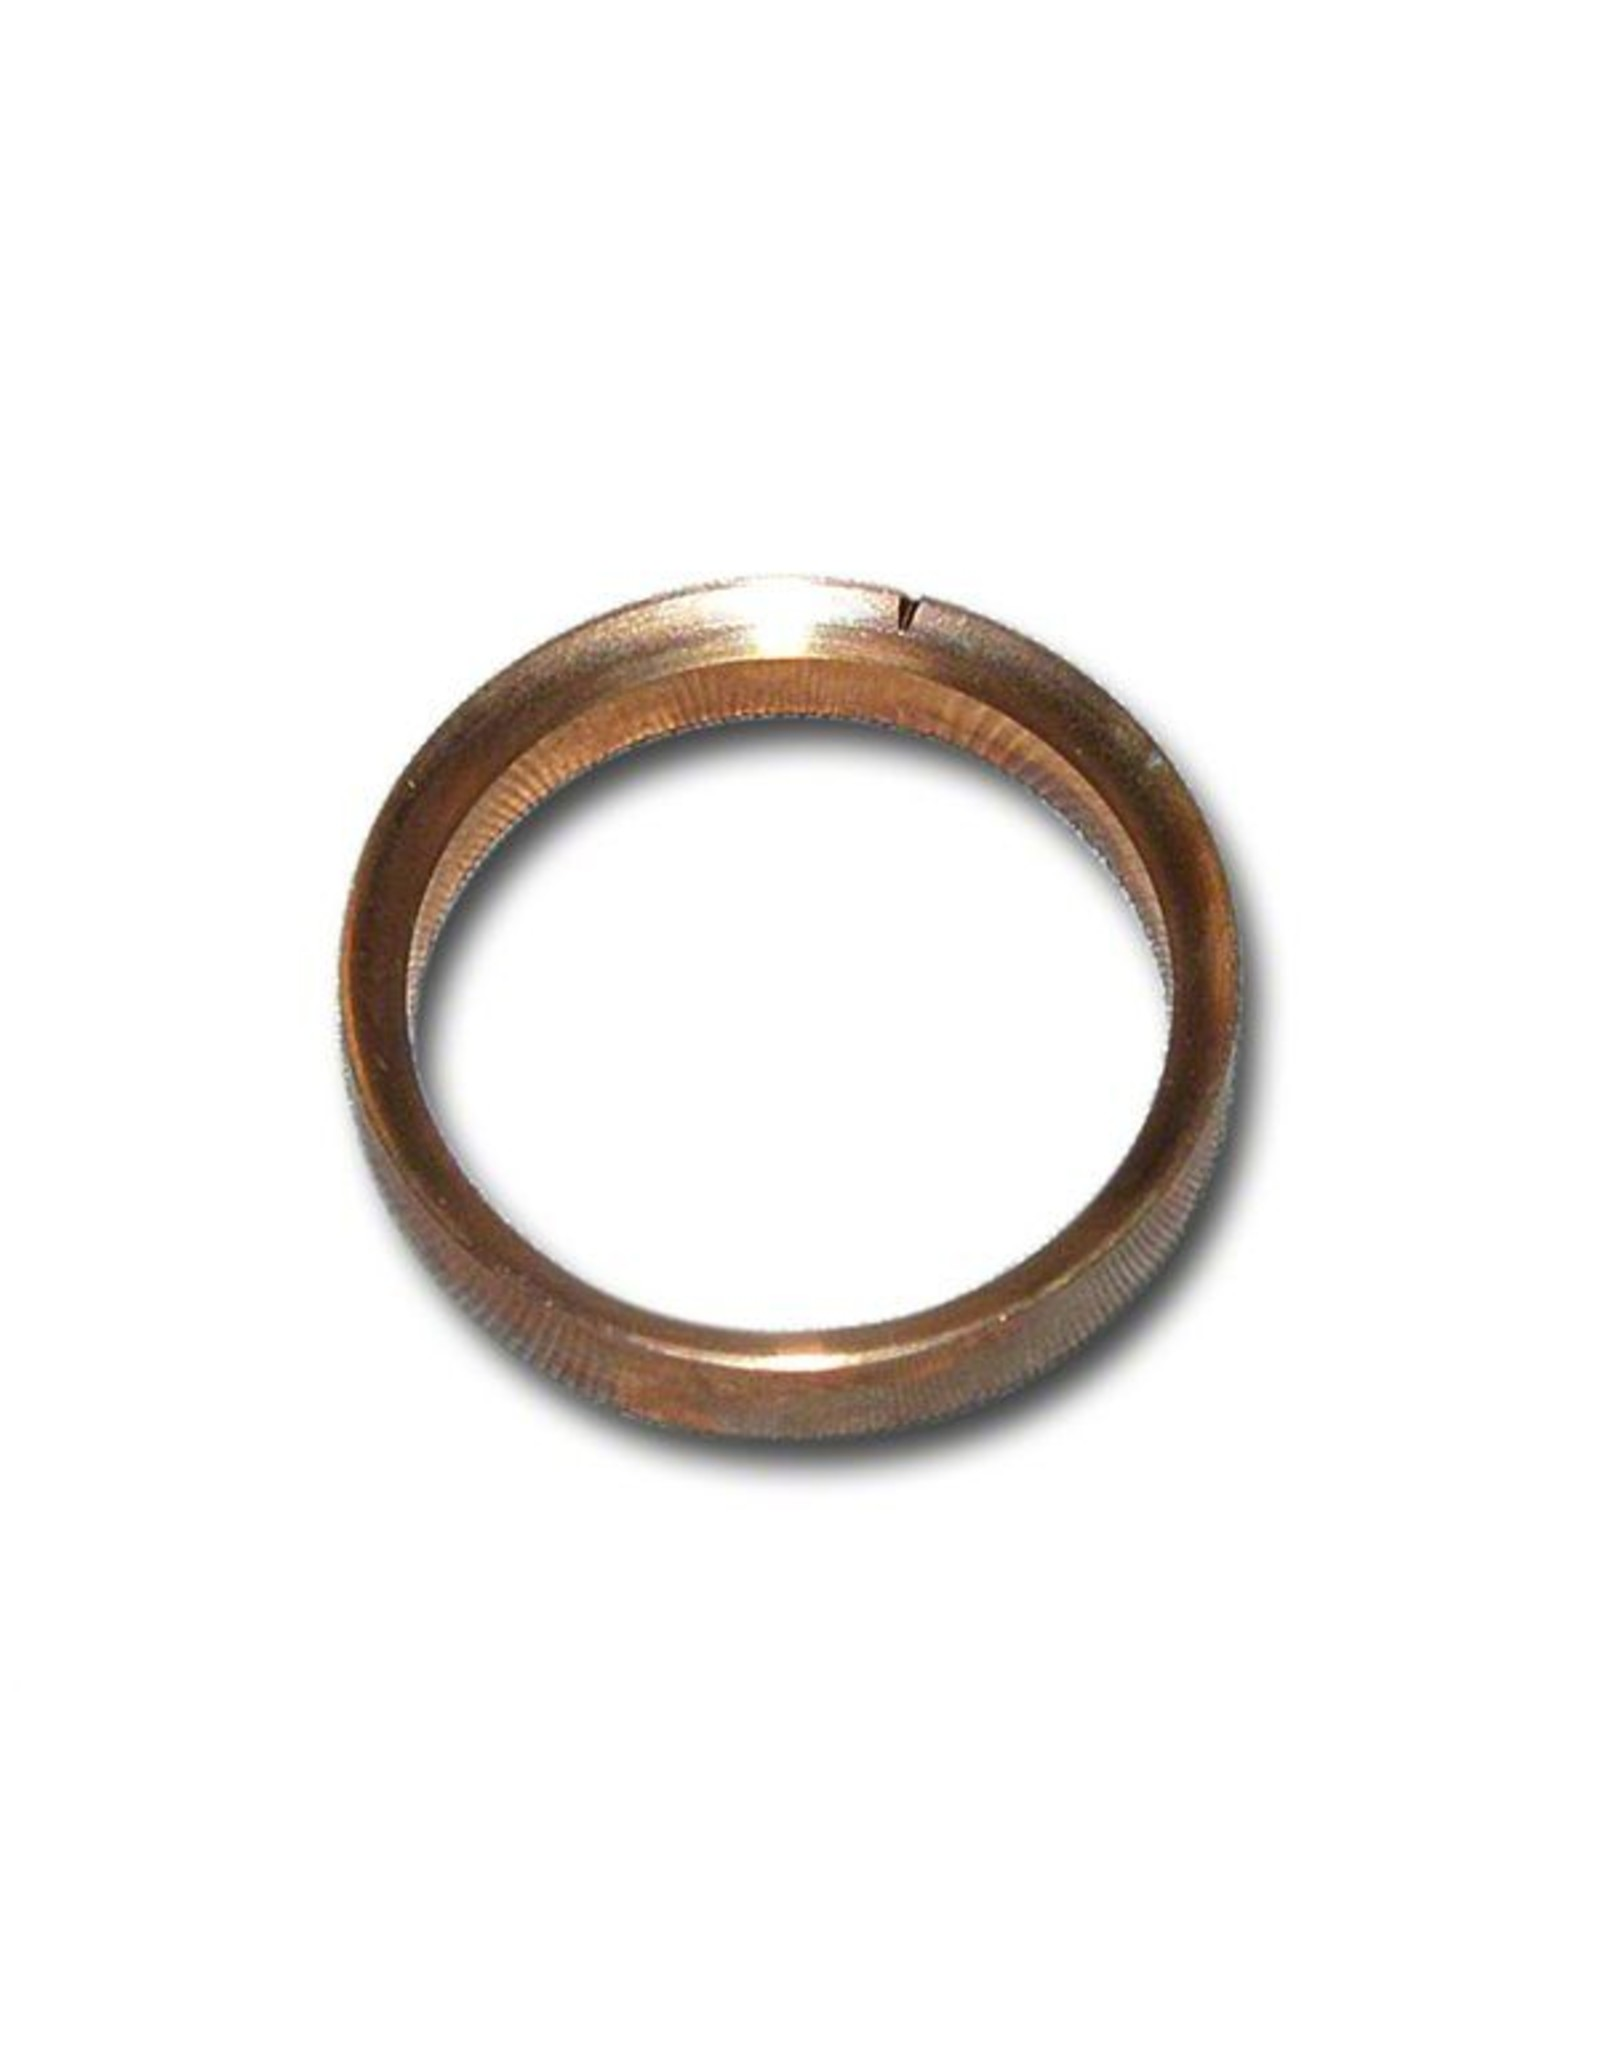 OMAX Style Support Ring, Check Valve